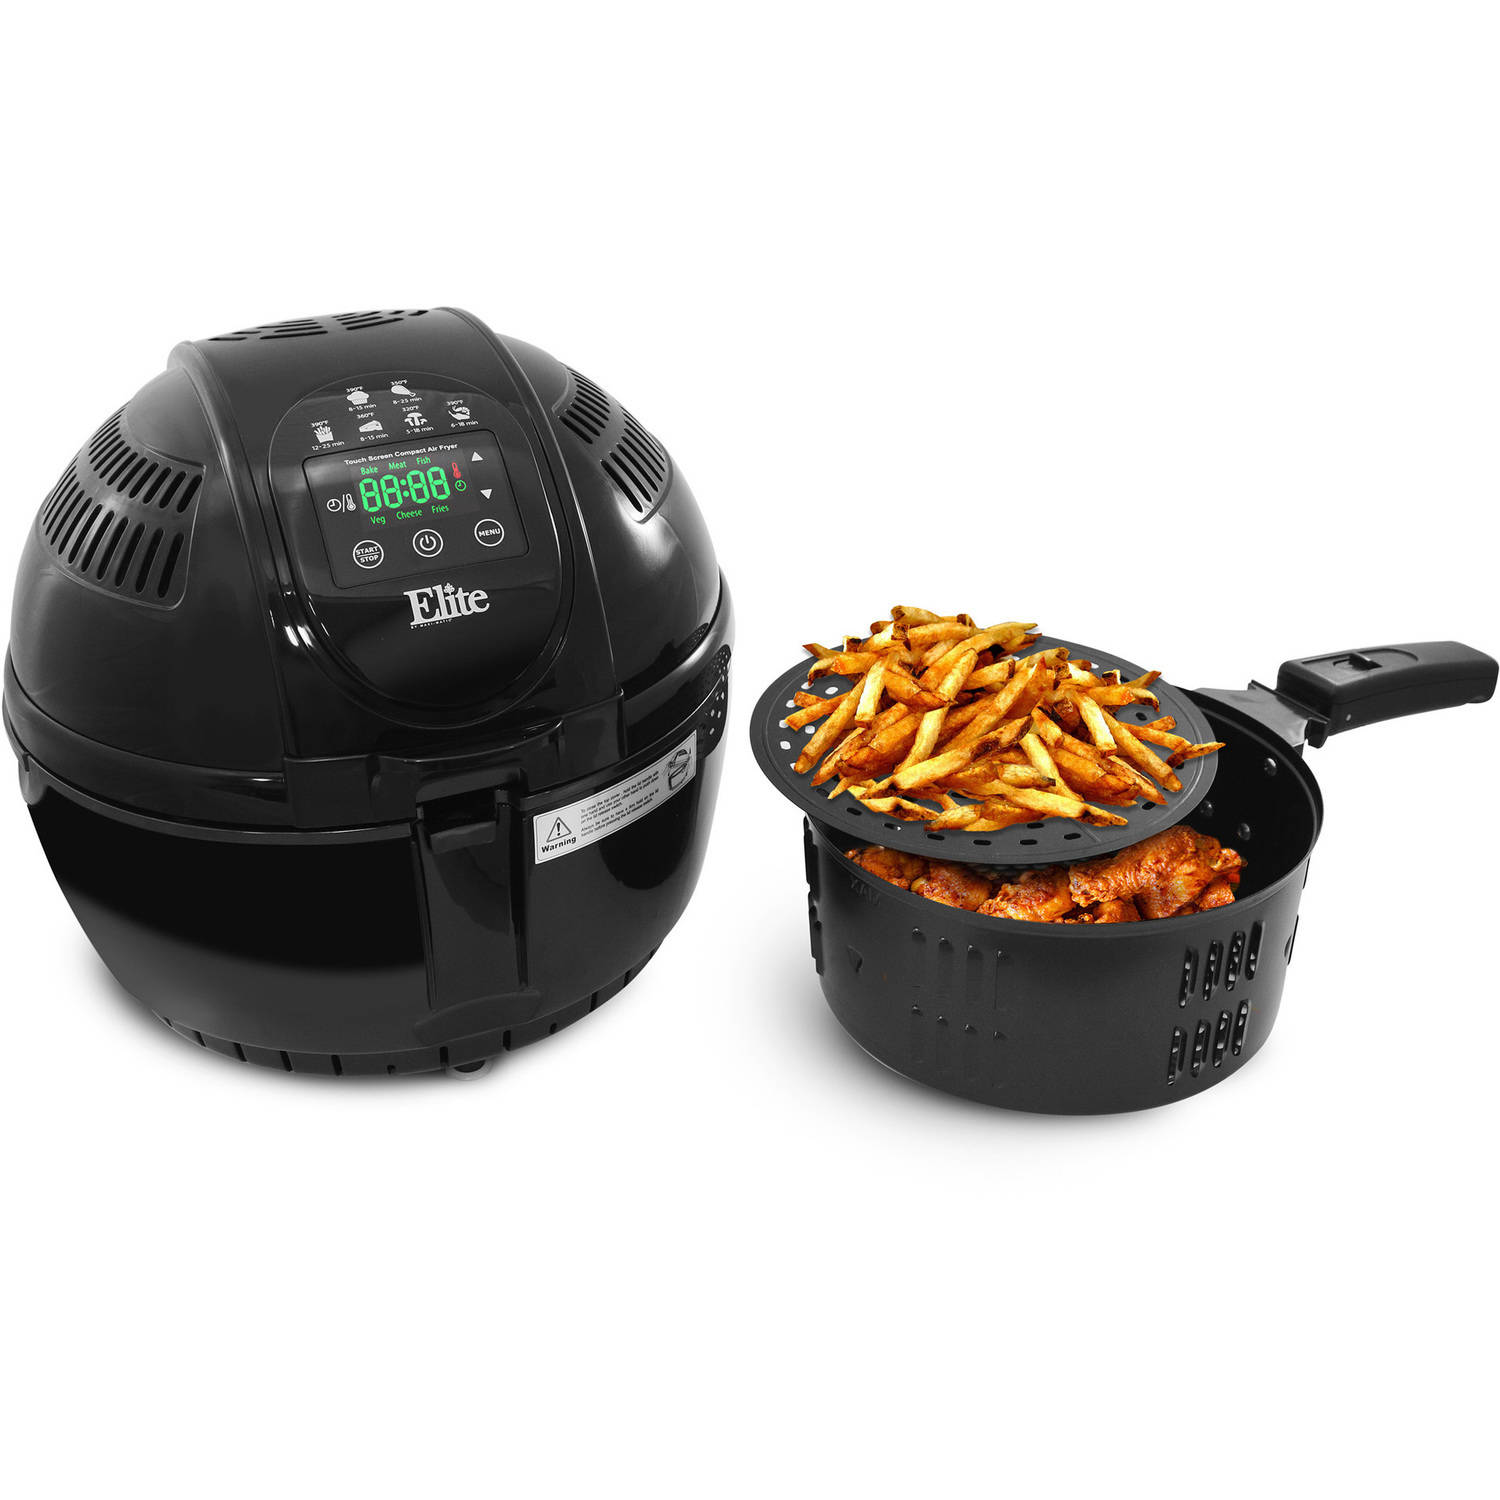 Elite Platinum 3.5-Quart Digital Air Fryer Black